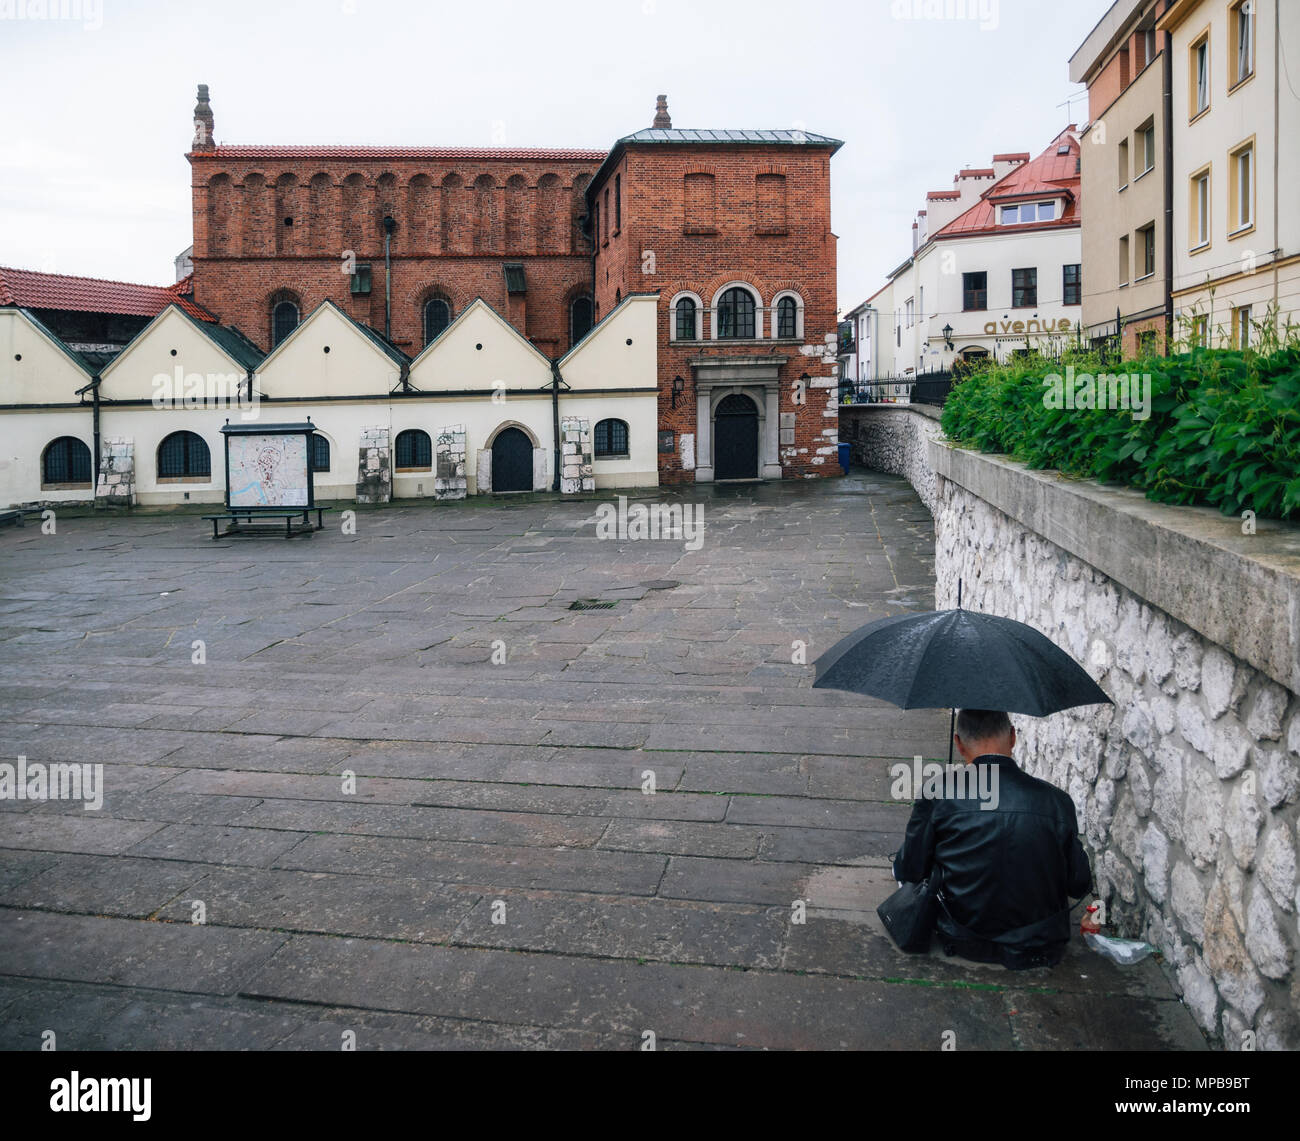 Krakow, Poland - May 23, 2017: Adult man sits with umbrella against old Synagogue in the historic Kazimierz, old jewish district in Krakow, Poland - Stock Image